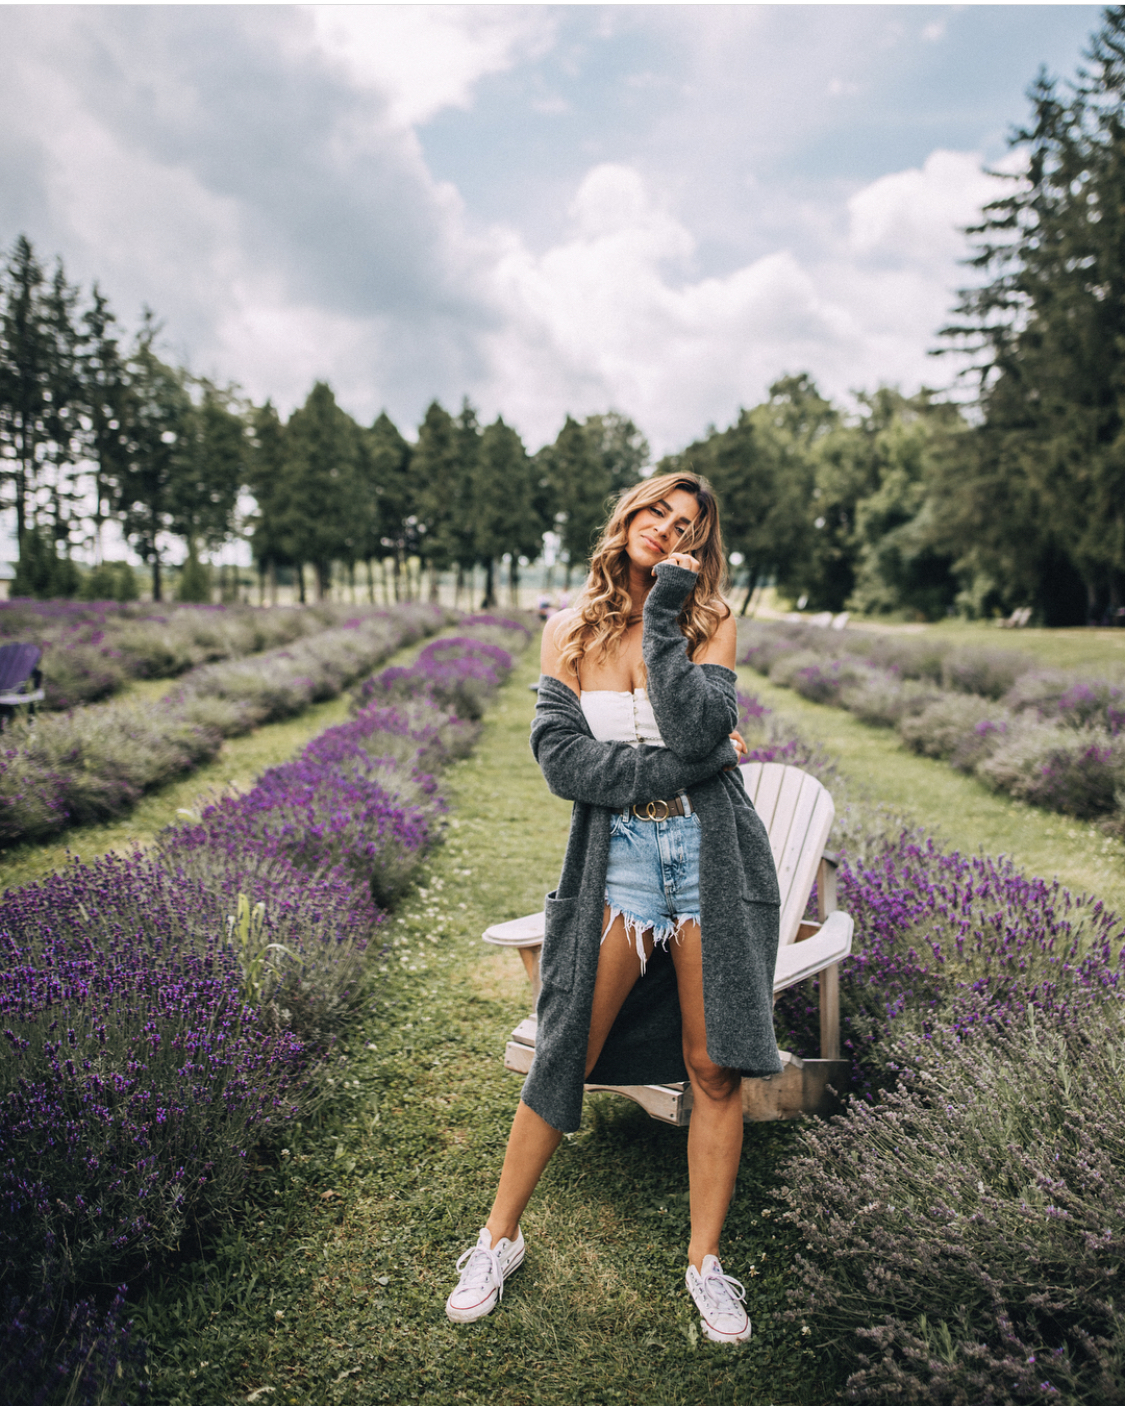 One of the best Montreal summer activities is a day trip to Maison Lavende, the lavender fields near Montreal